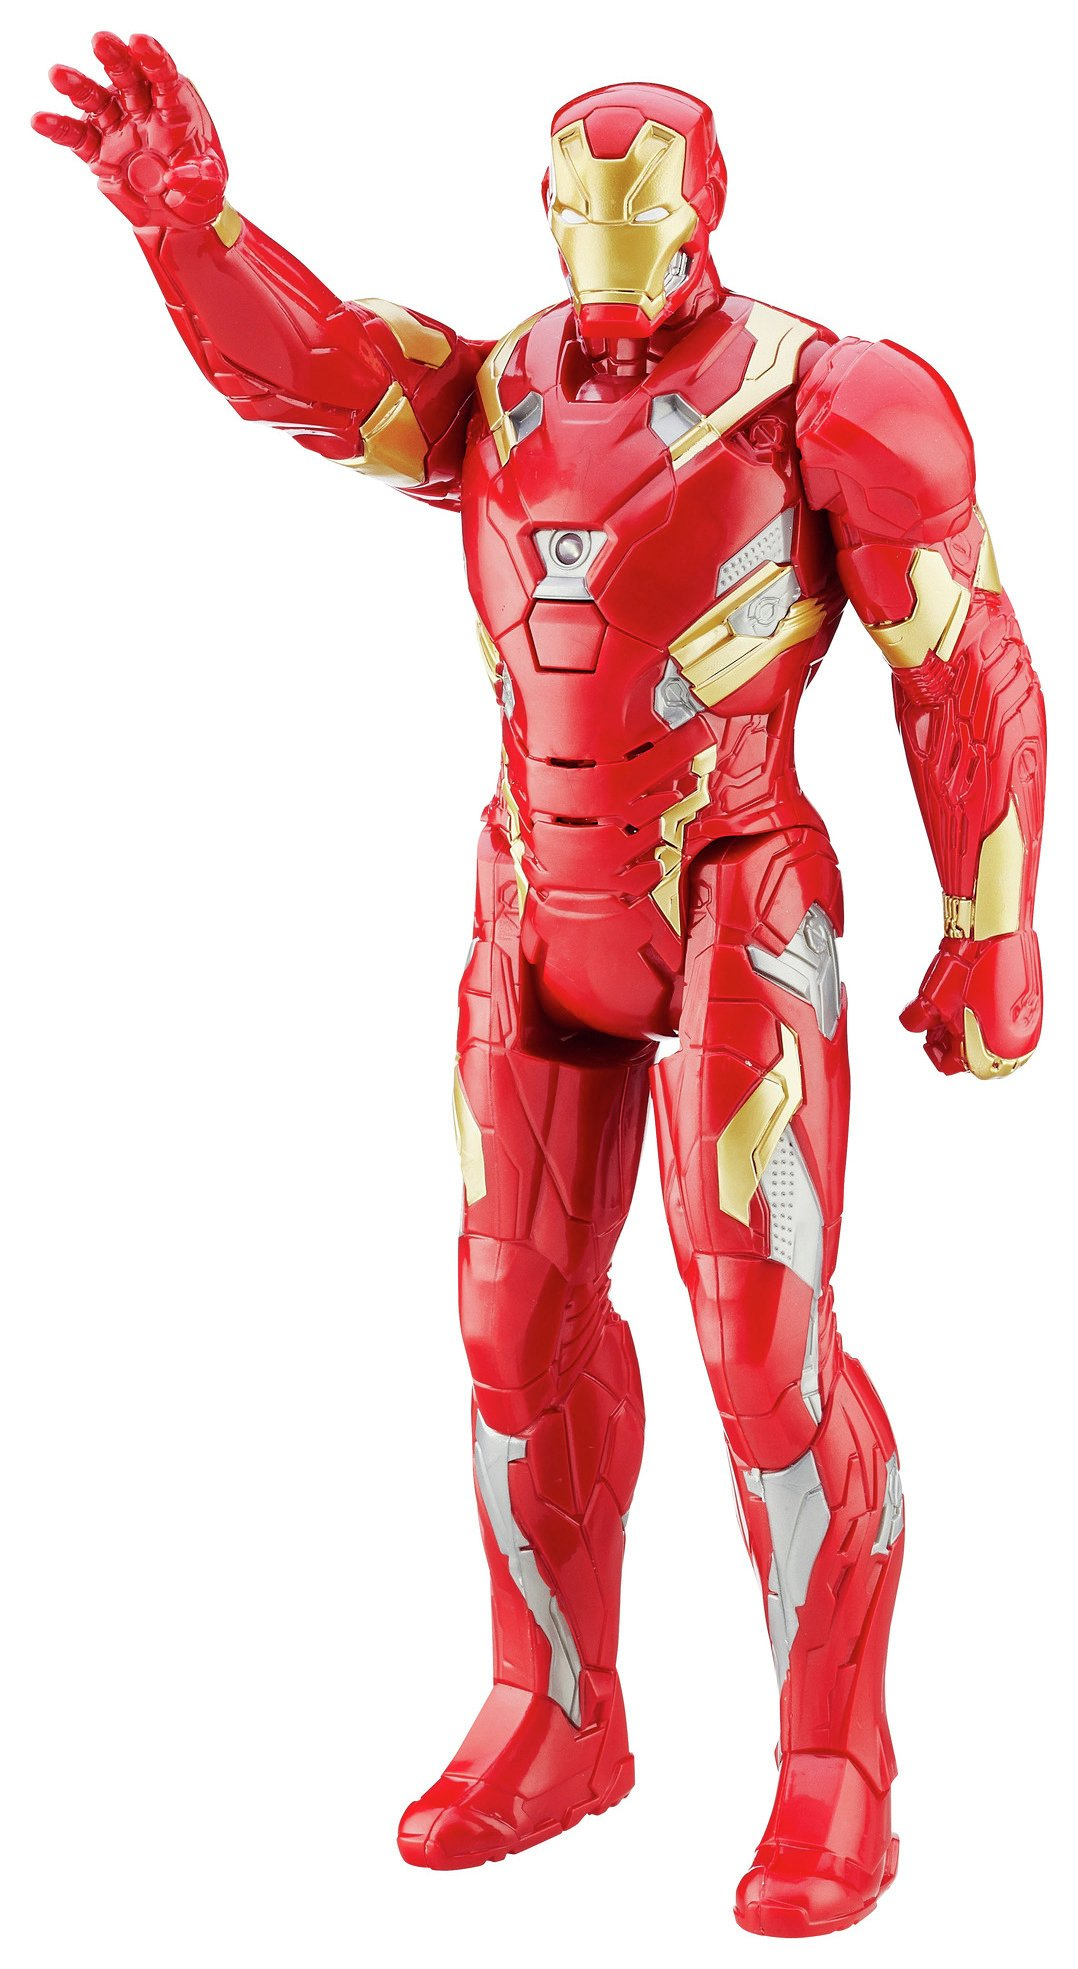 Image of Avengers - Age of Ultron Titan Tech Iron Man Action Figure